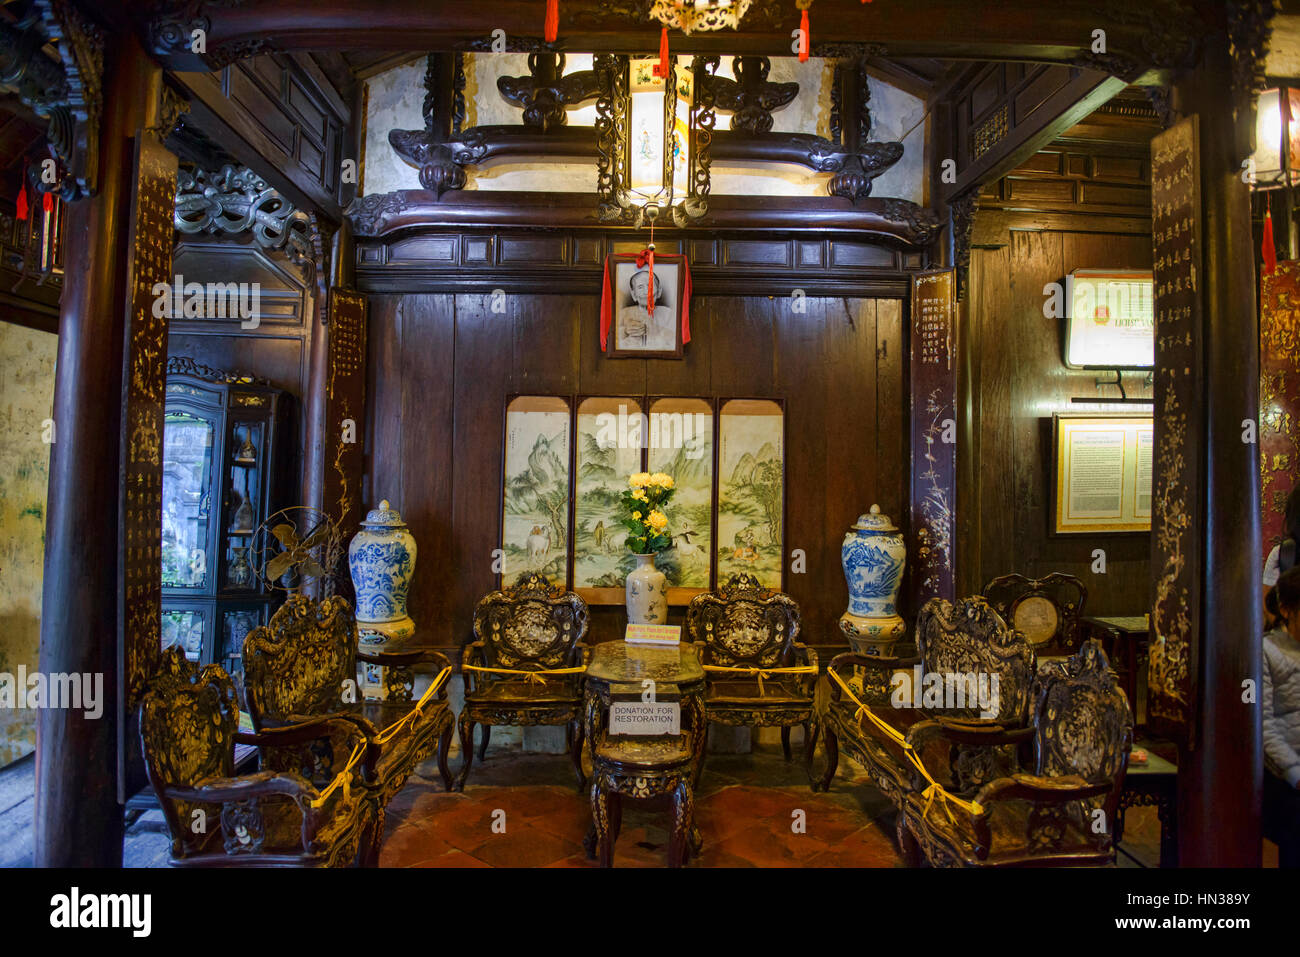 Interior Of The Old House Of Tan Ky, A Heritage House In Hoi An, Vietnam